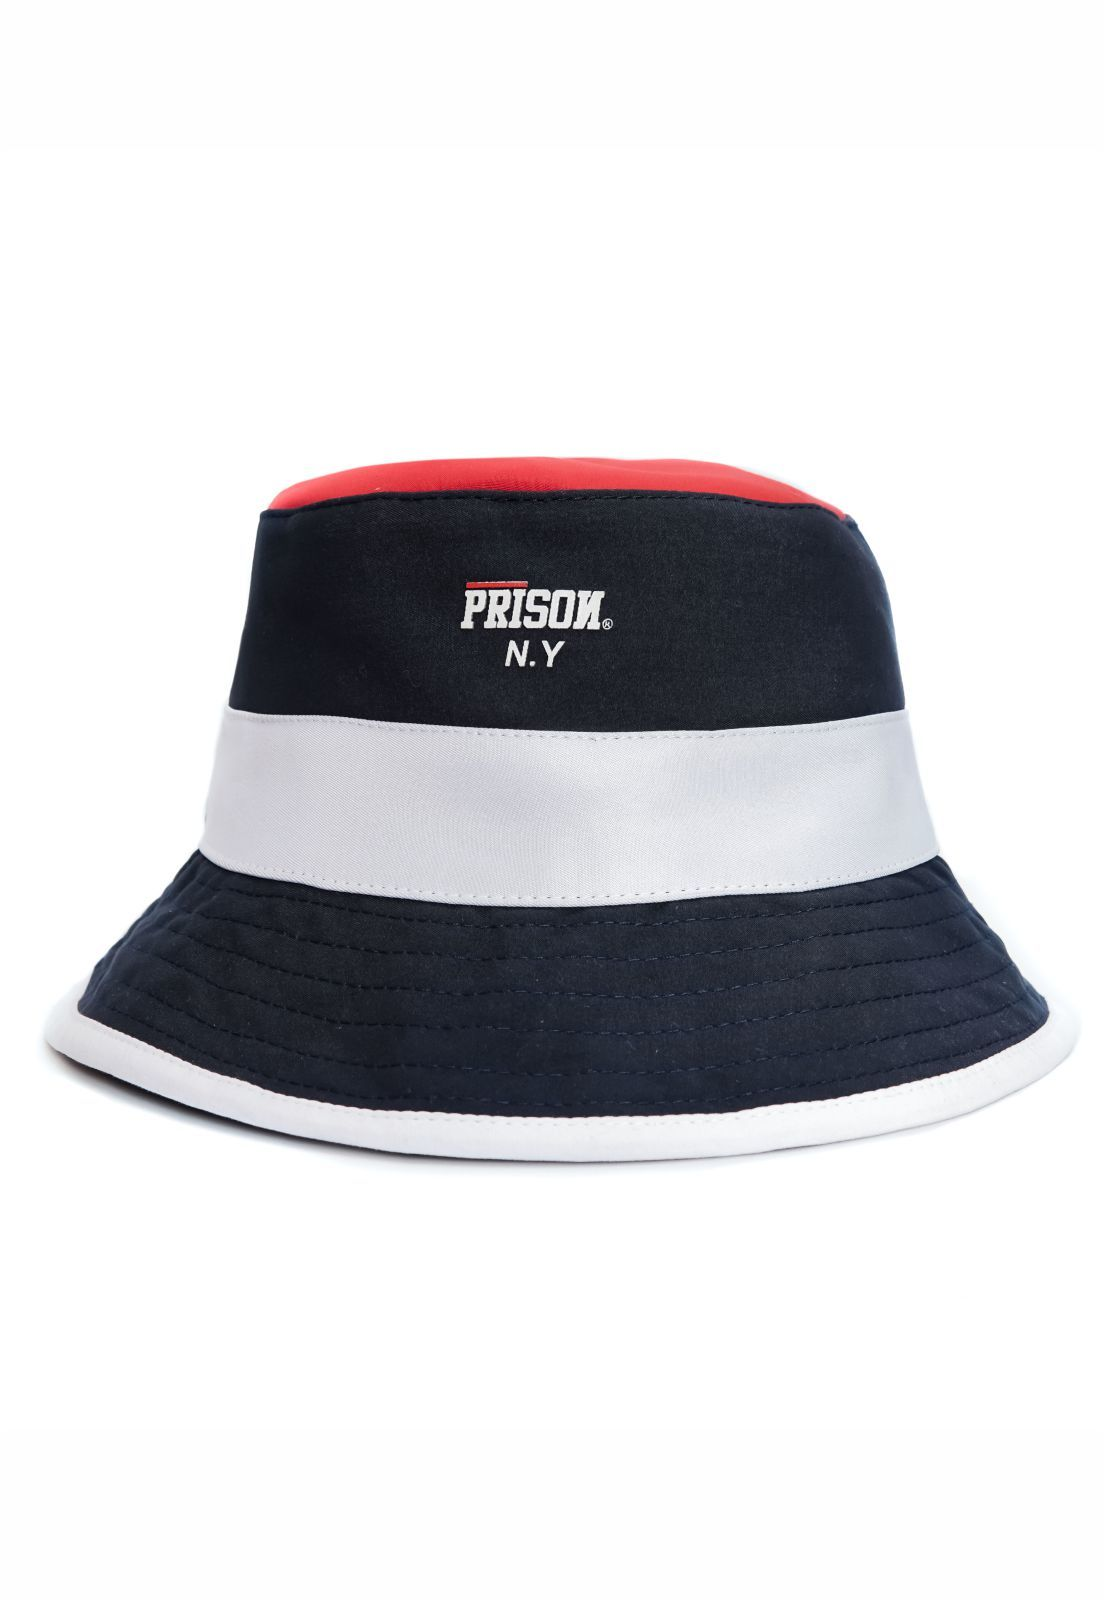 Bucket Hat Prison New York